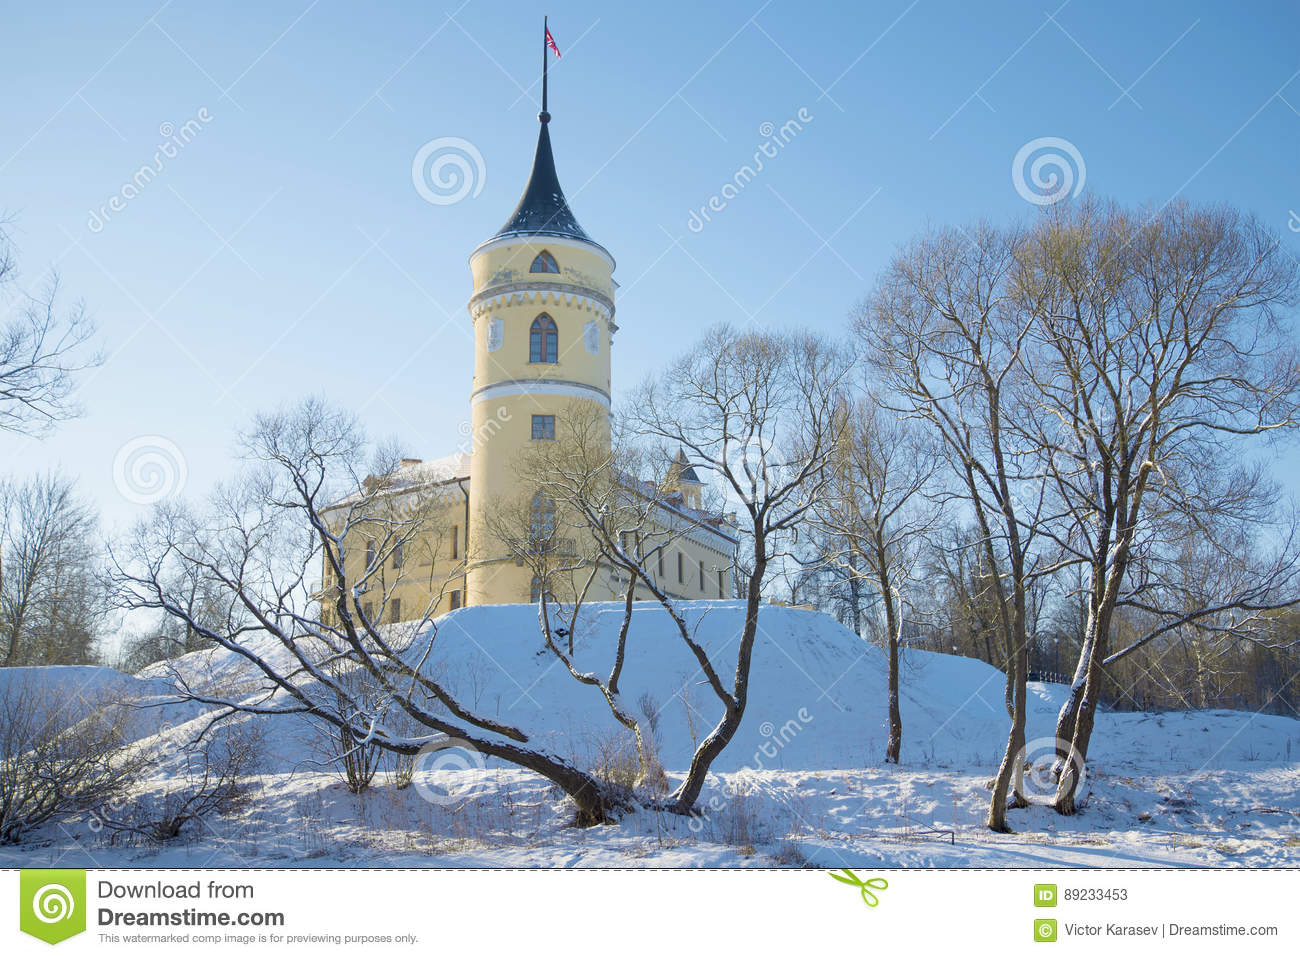 Sunny February day at the old castle Marienthal. Vicinities of St. Petersburg, Russia